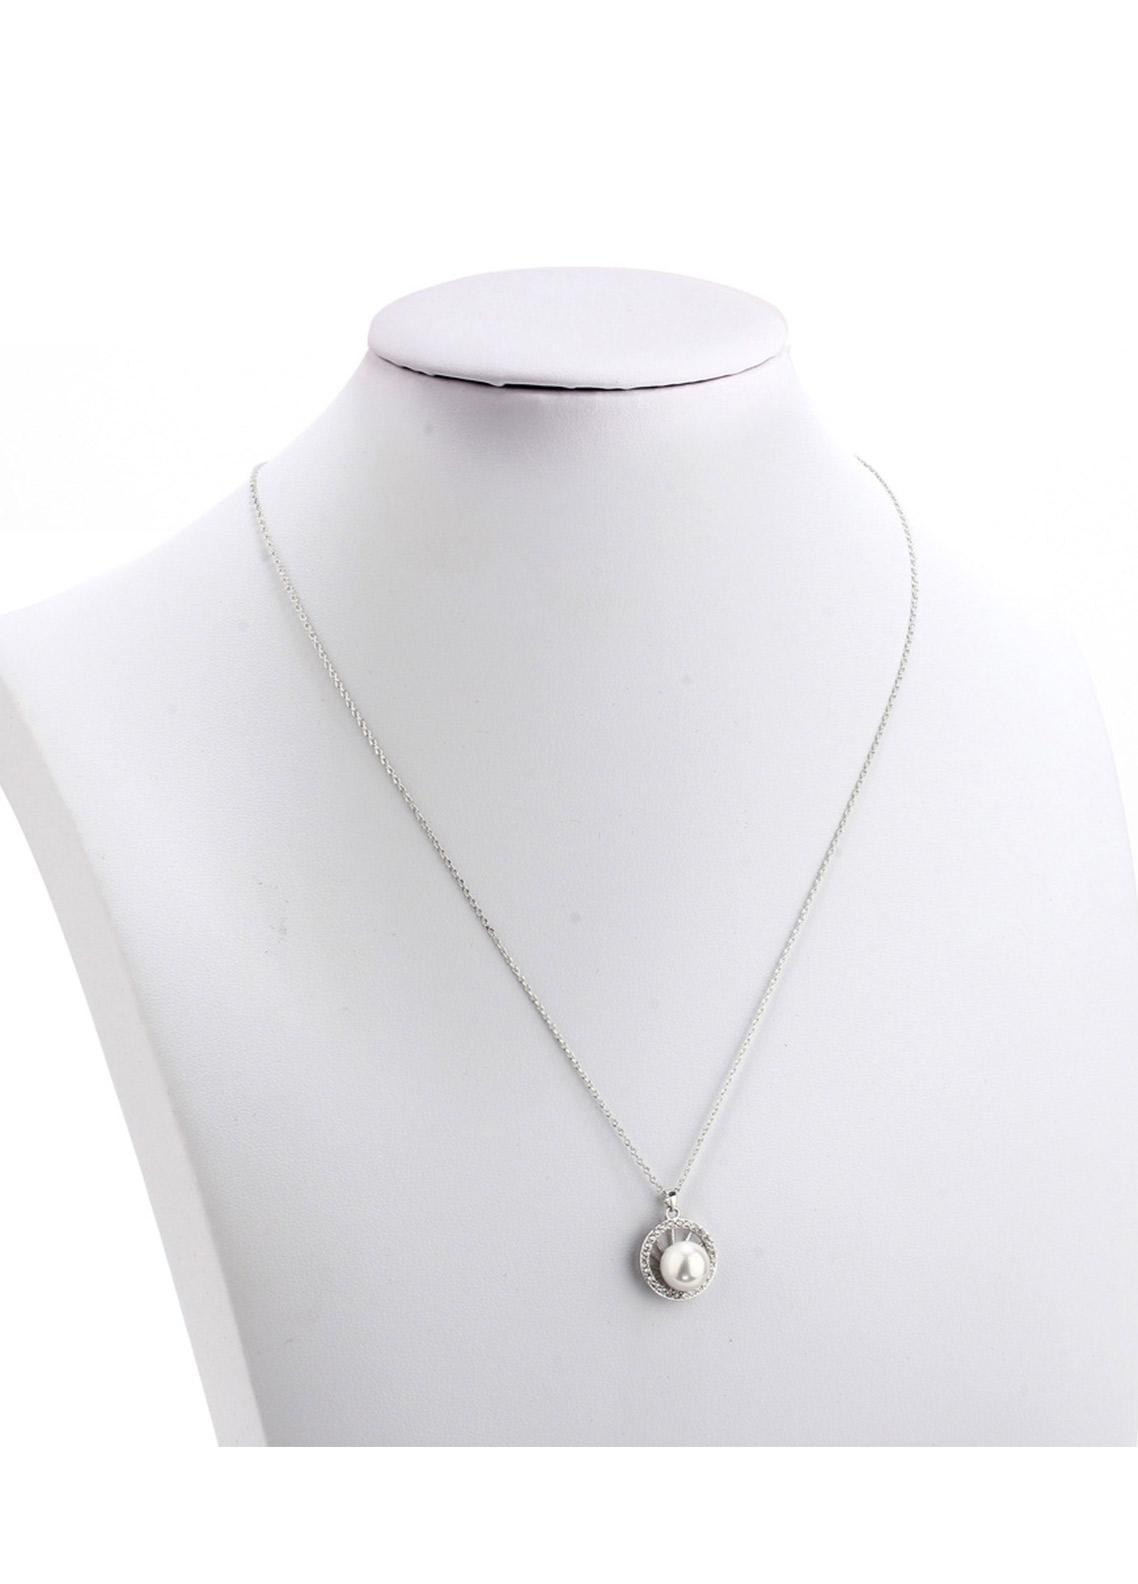 Anna Grace London by Silk Avenue Silver Plated Crystal Pearl Circle Necklace AGN0049 - Ladies Jewellery